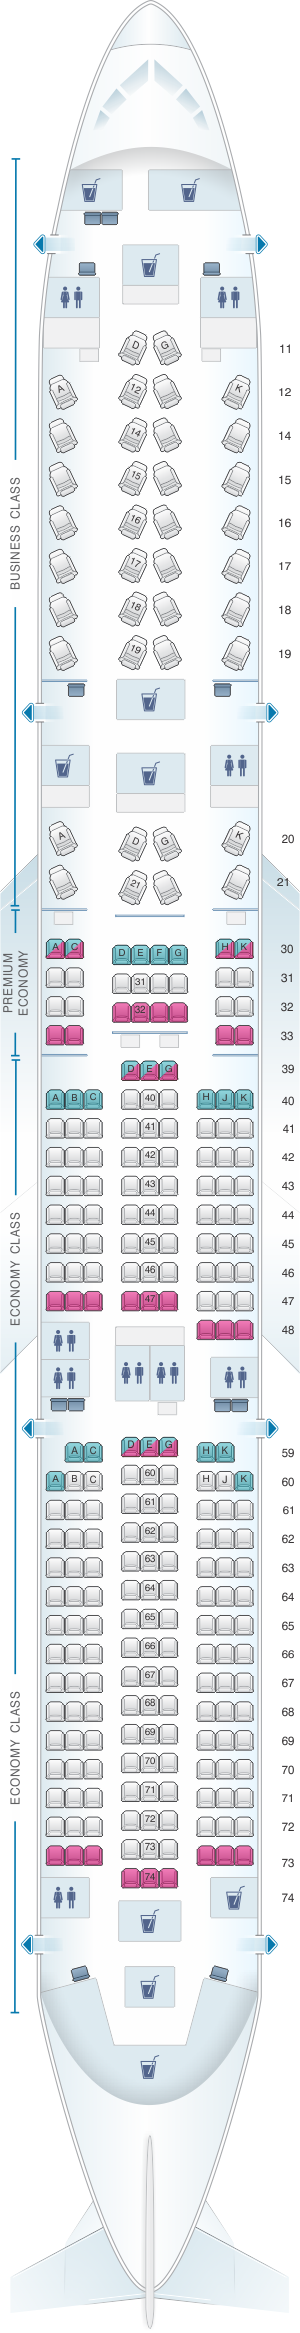 Seat map for Cathay Pacific Airways Airbus A350-900 (35G)